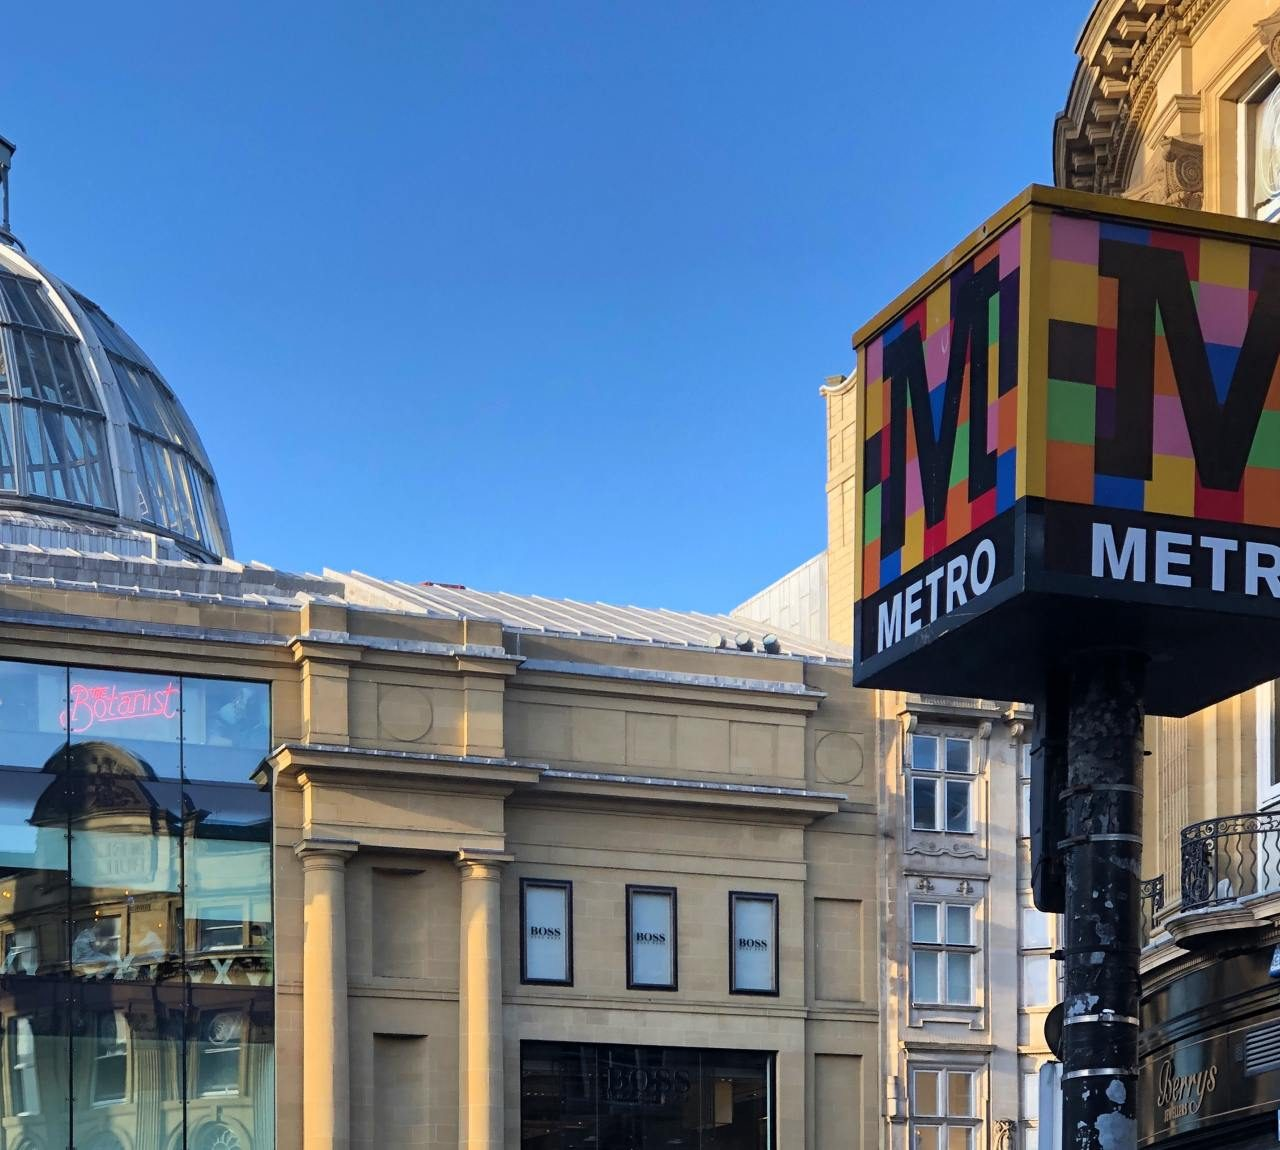 Our Great North Elmer Adventure with Tyne and Wear Metro